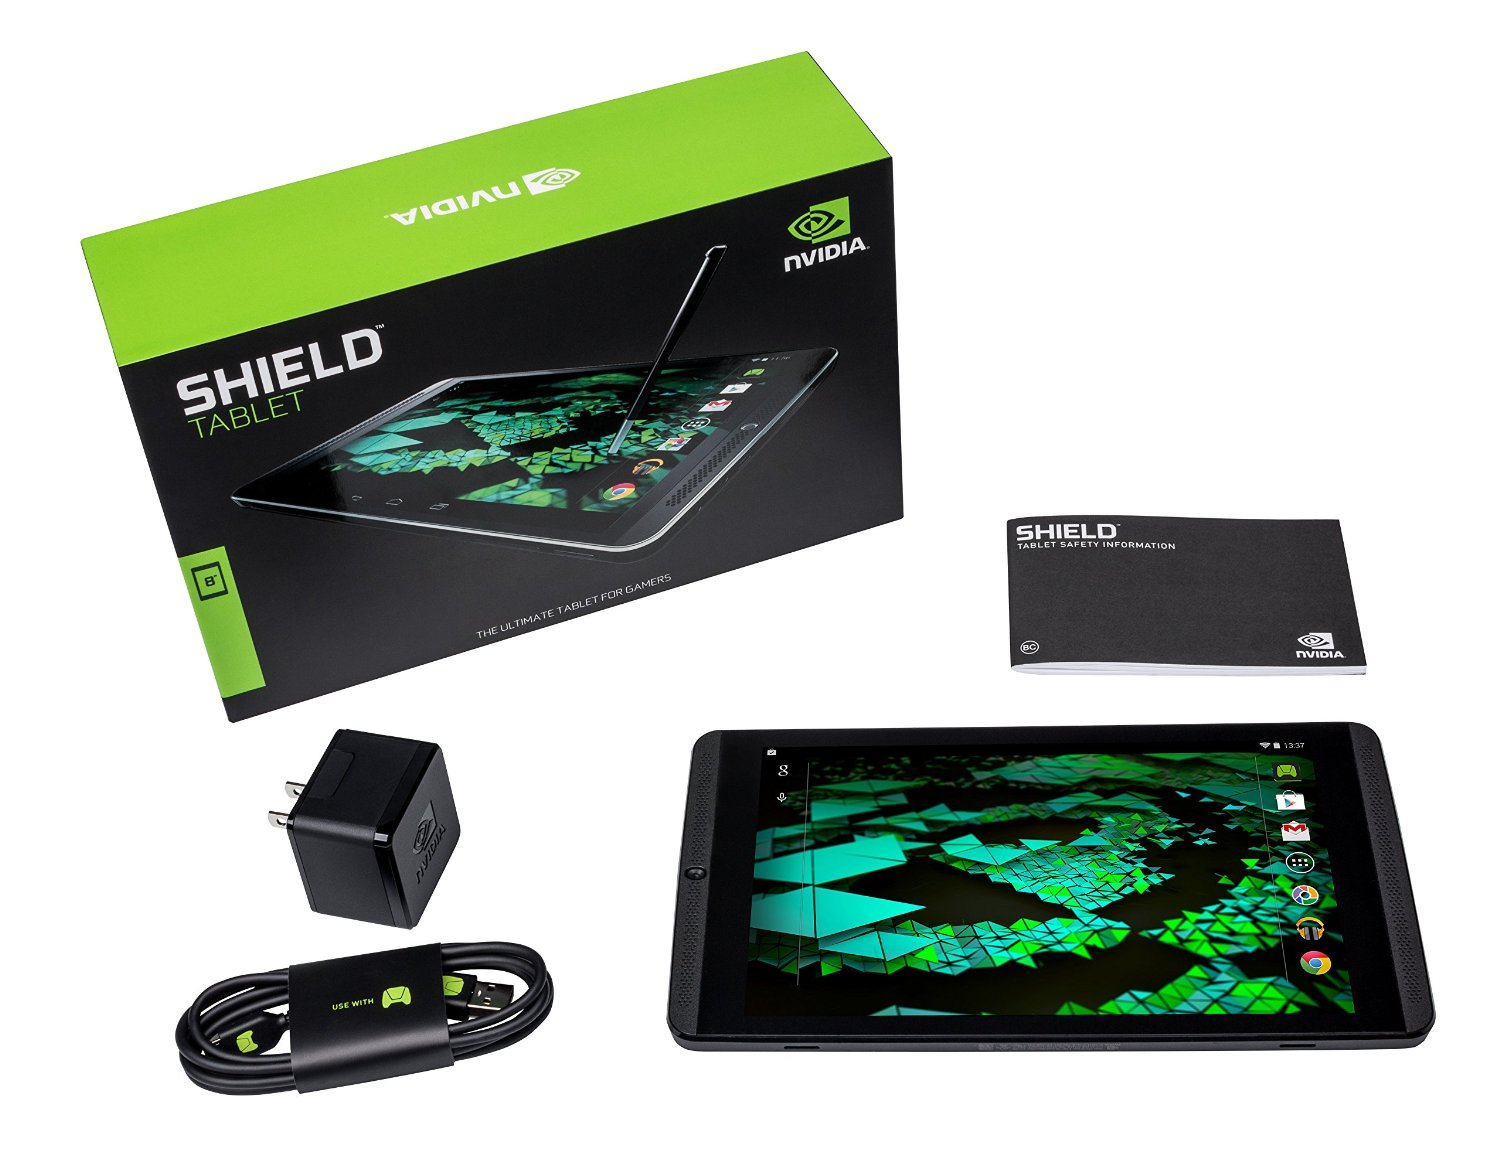 Das ultimative Gamer-Tablet: Nvidia Shield